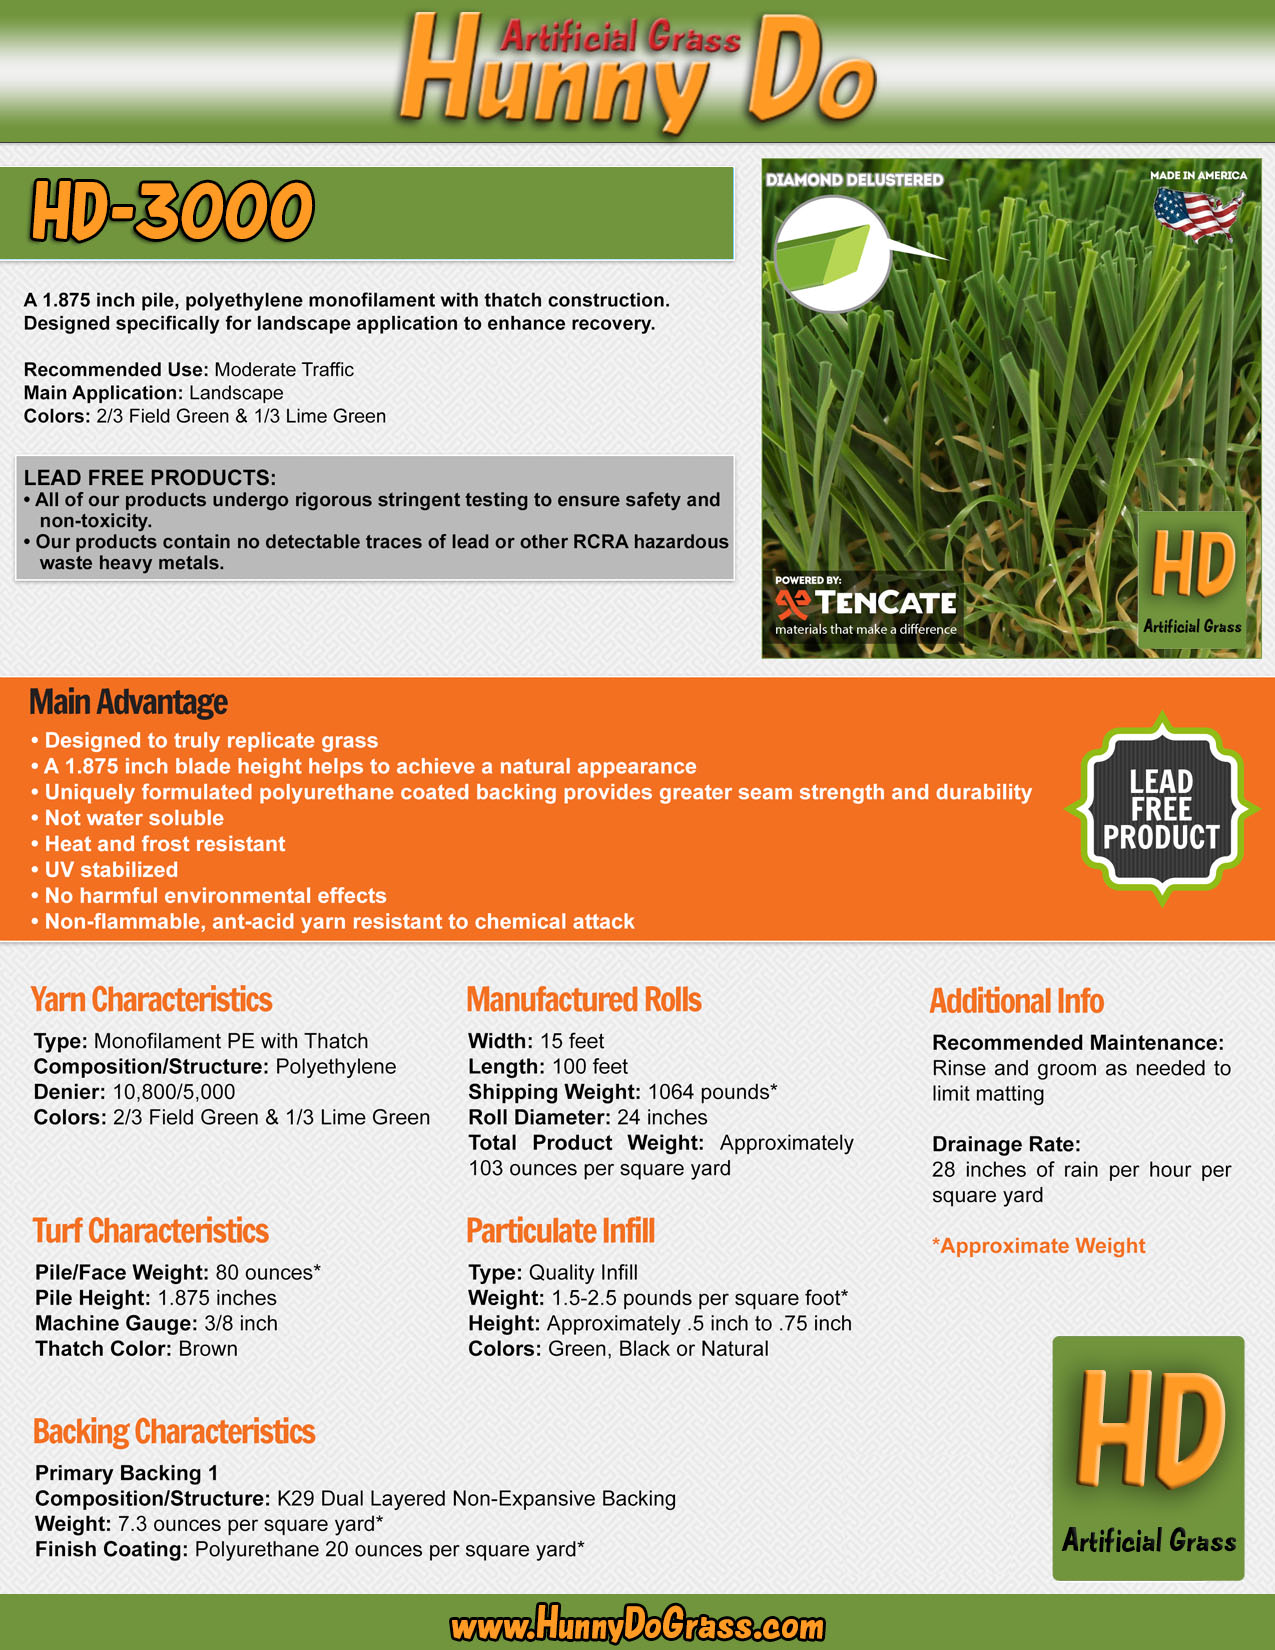 Hunny Do 3000 Specifications